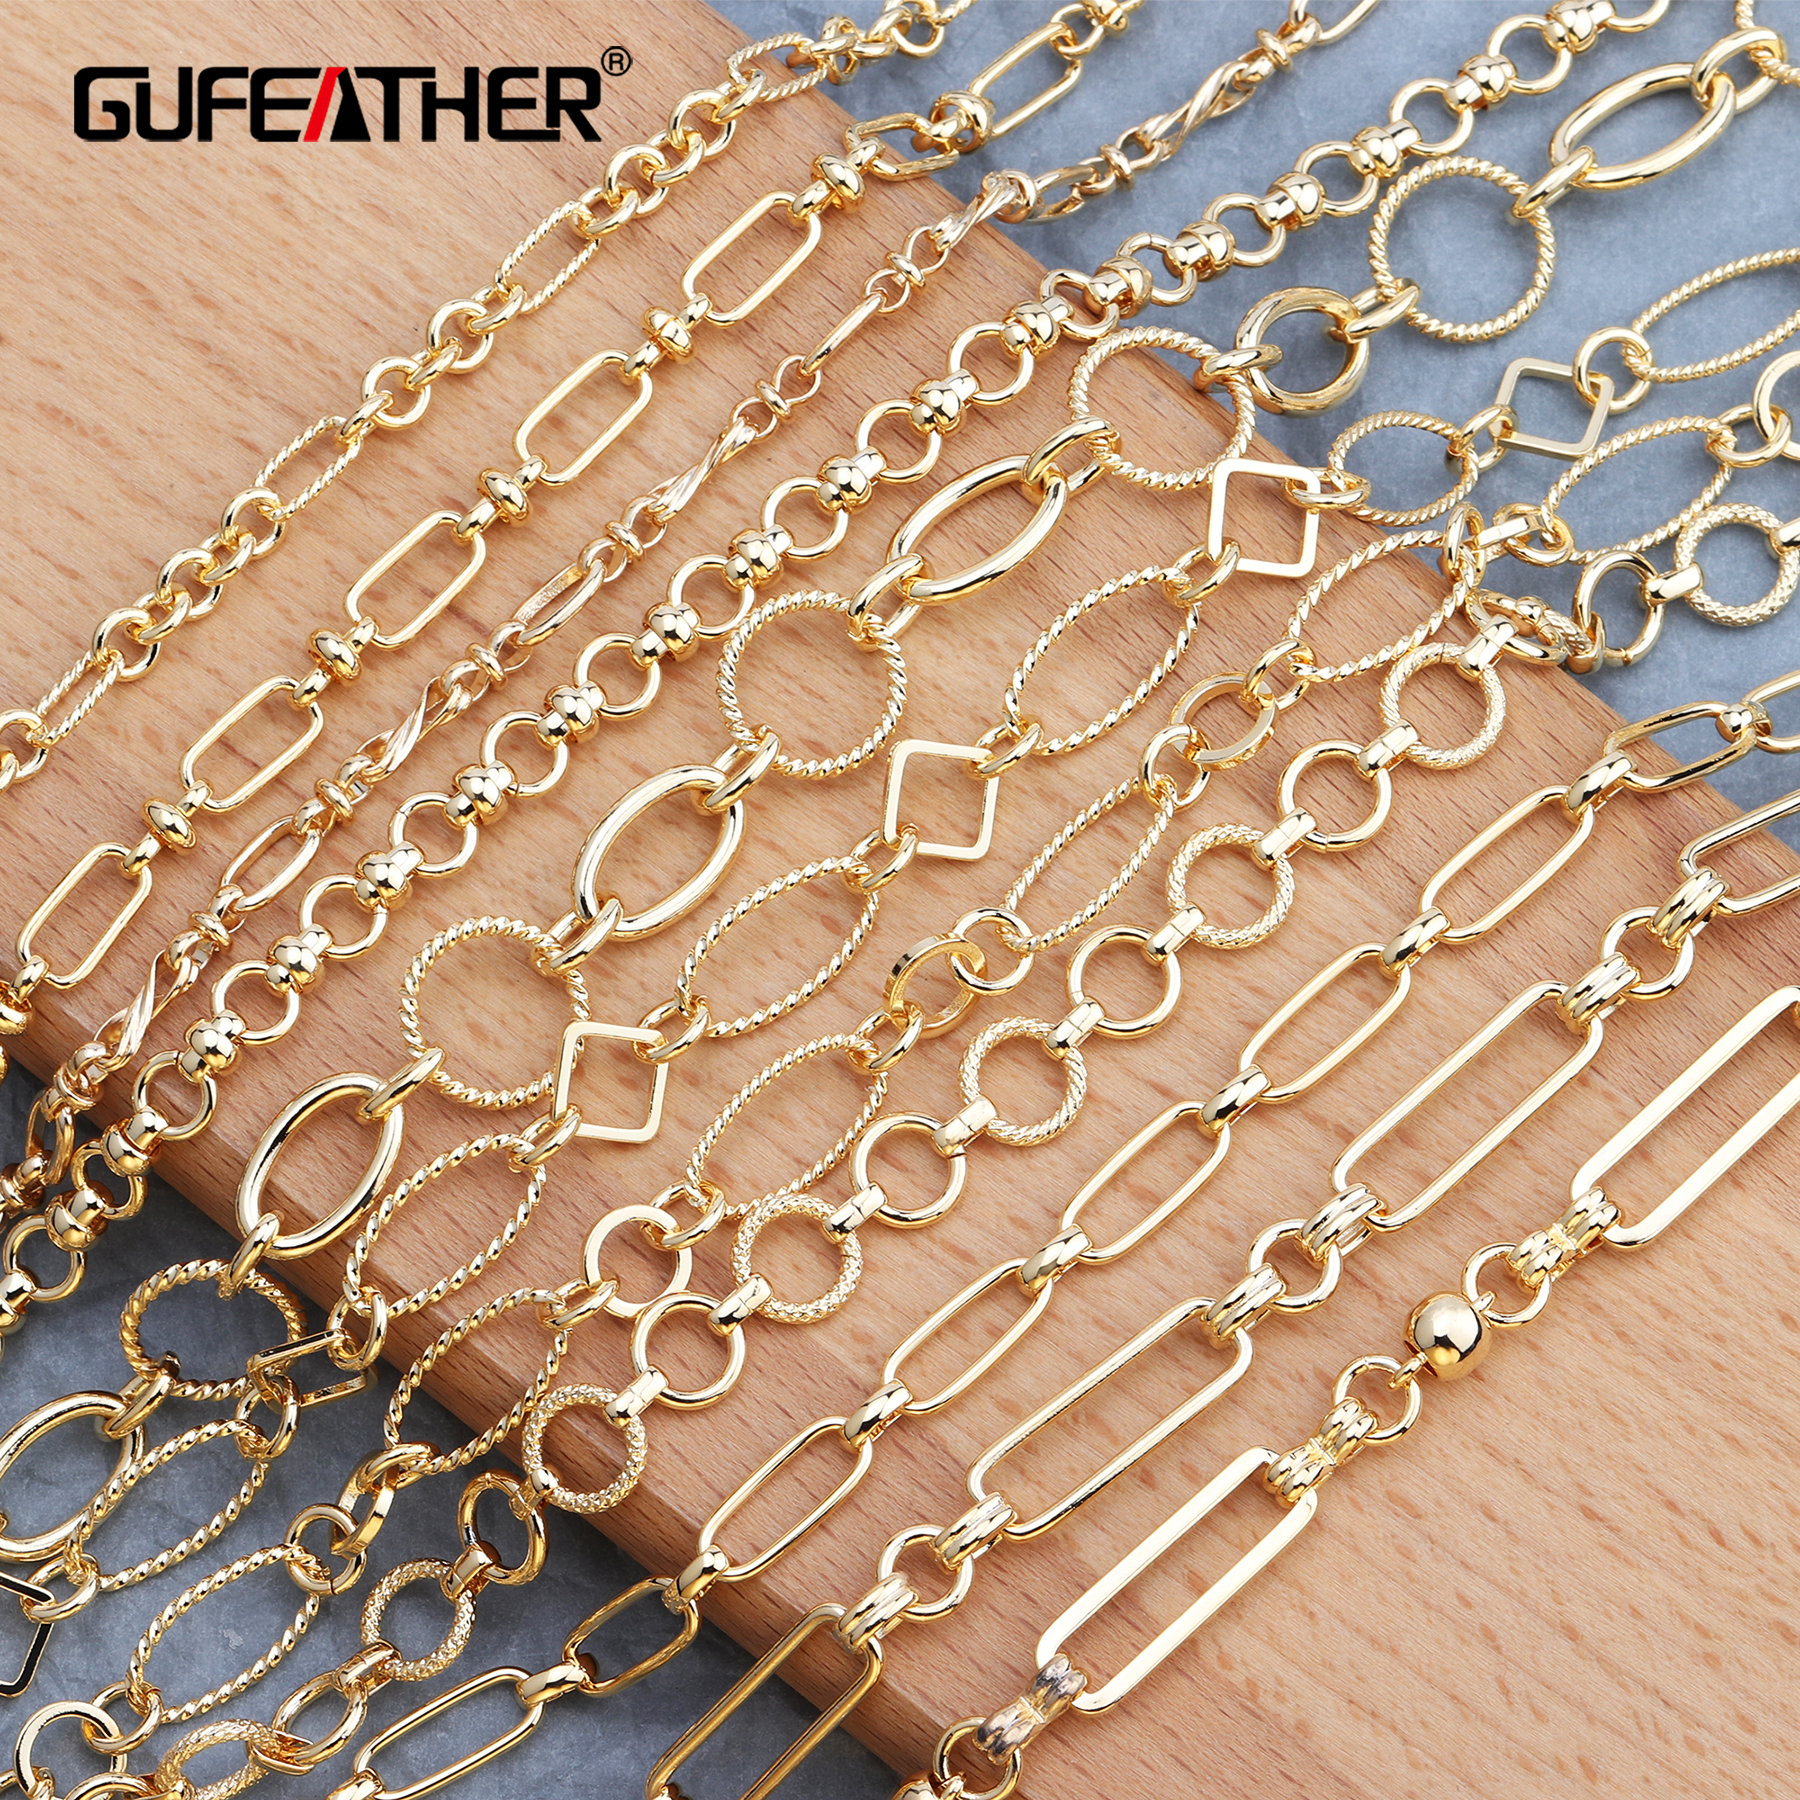 GUFEATHER  C54,18K Gold,jewelry Accessories,jewelry Making,hand Made,jewelry Findings,diy Earrings Pendant,Goldon Chain,1m/lot